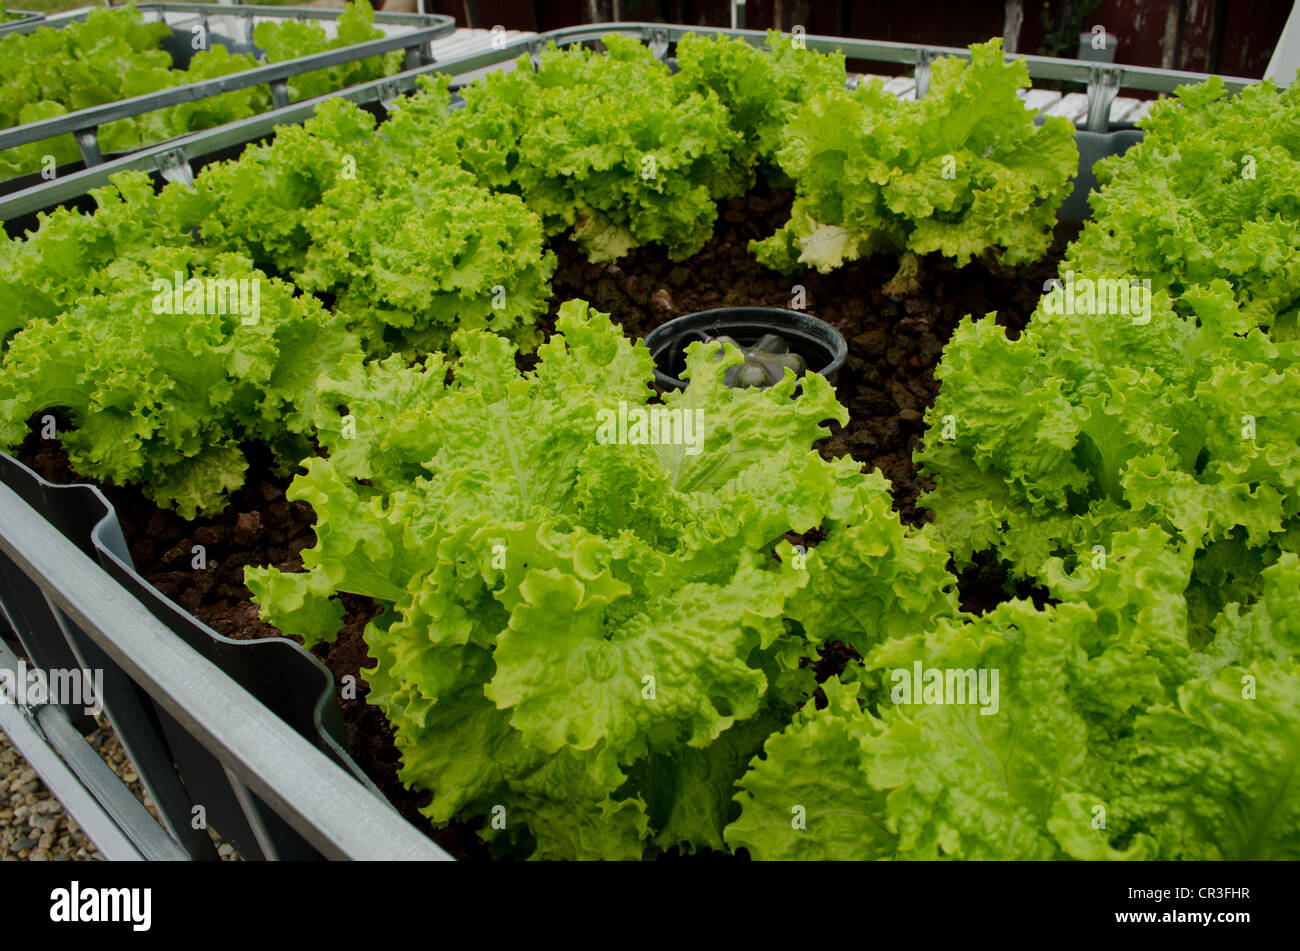 Hydroponic growing bed with lettuce a project of the for Hydroponic grow bed